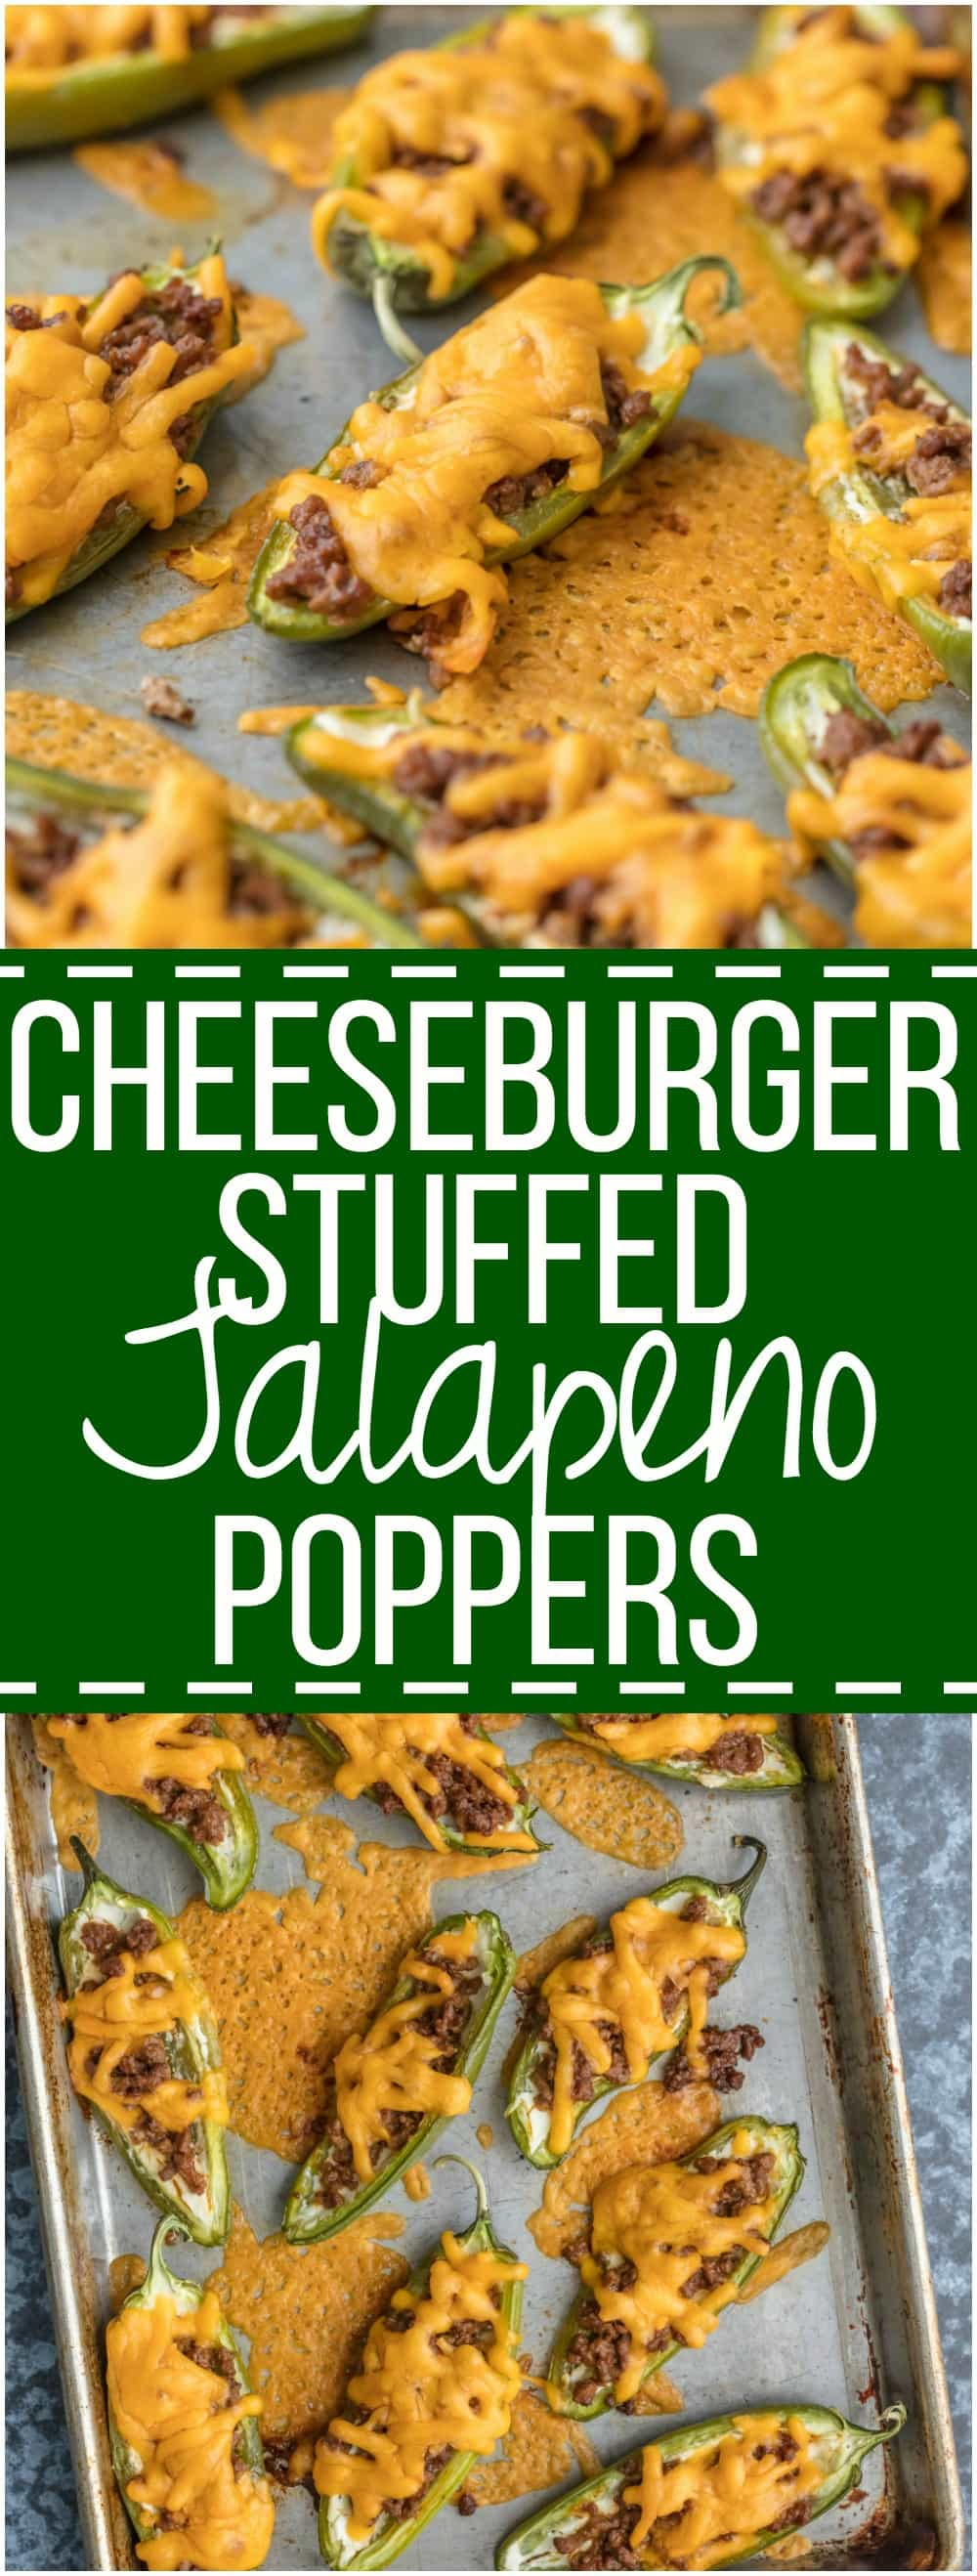 These CHEESEBURGER STUFFED JALAPENO POPPERS are a fun and delicious appetizer! We love these spicy bites for tailgating, parties, or a tasty night spent at home.